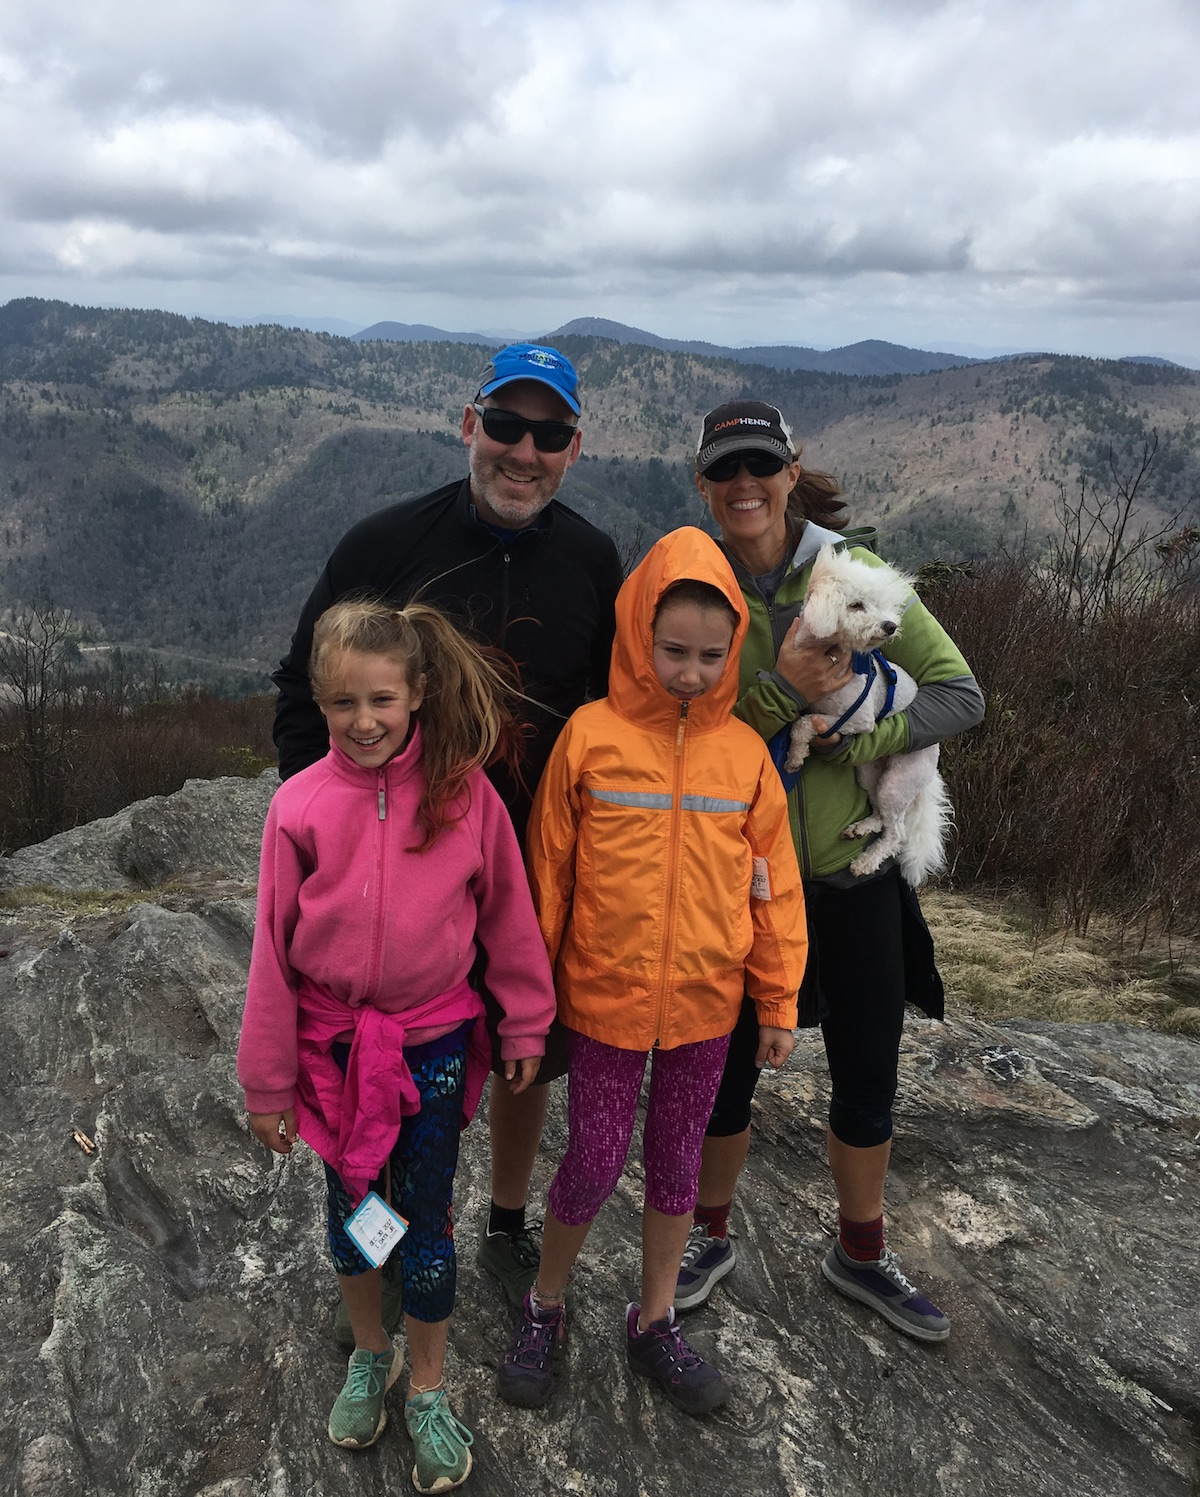 Andrew Bobilya and his family smile while hiking in North Carolina